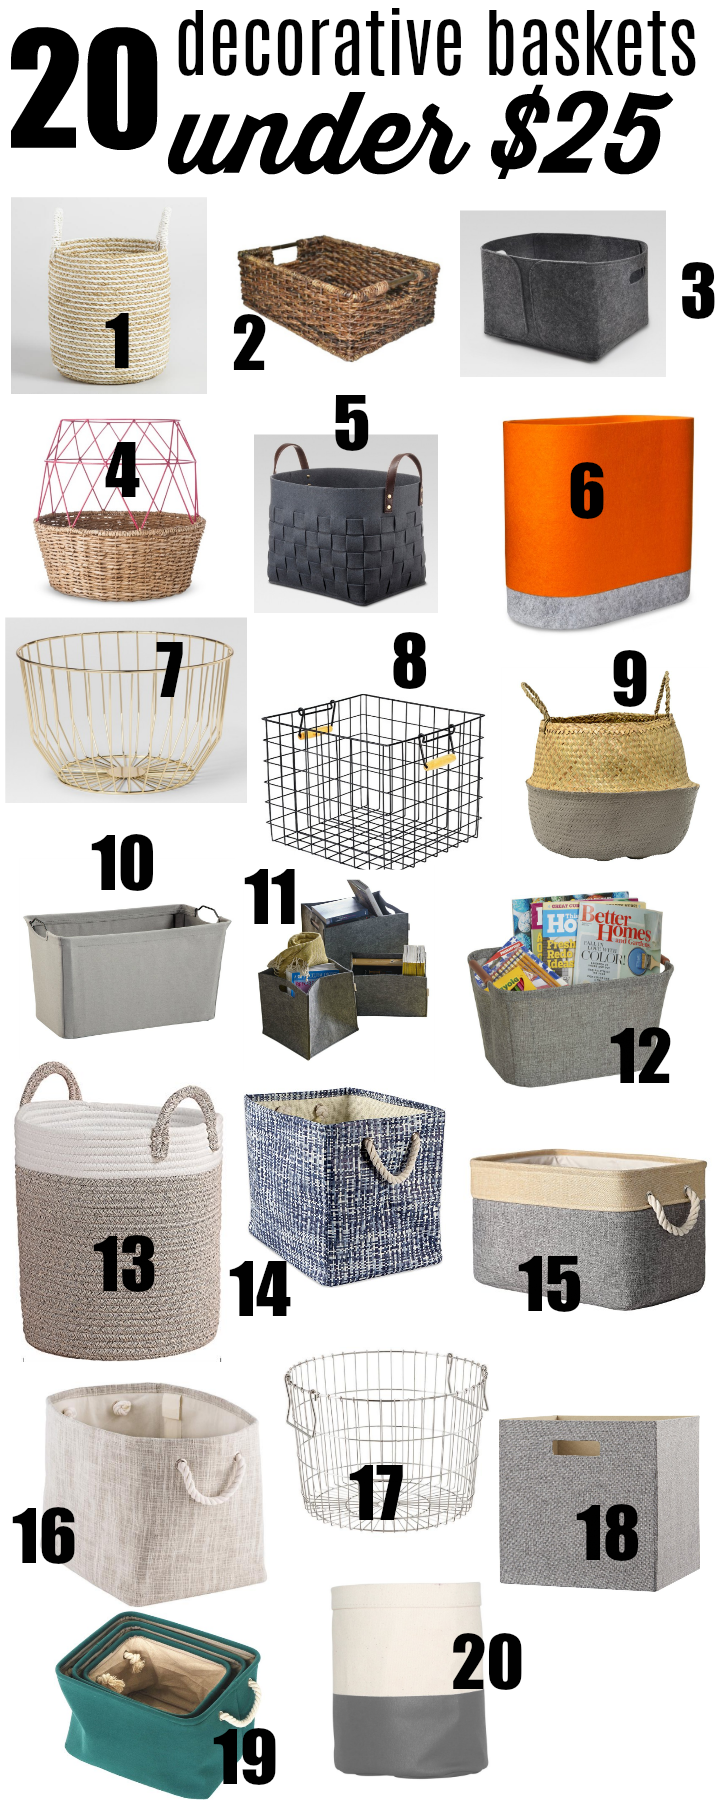 The best decorative storage baskets on the web that won't break the bank! At $25 a piece, these are affordable ways to clear clutter around the house!